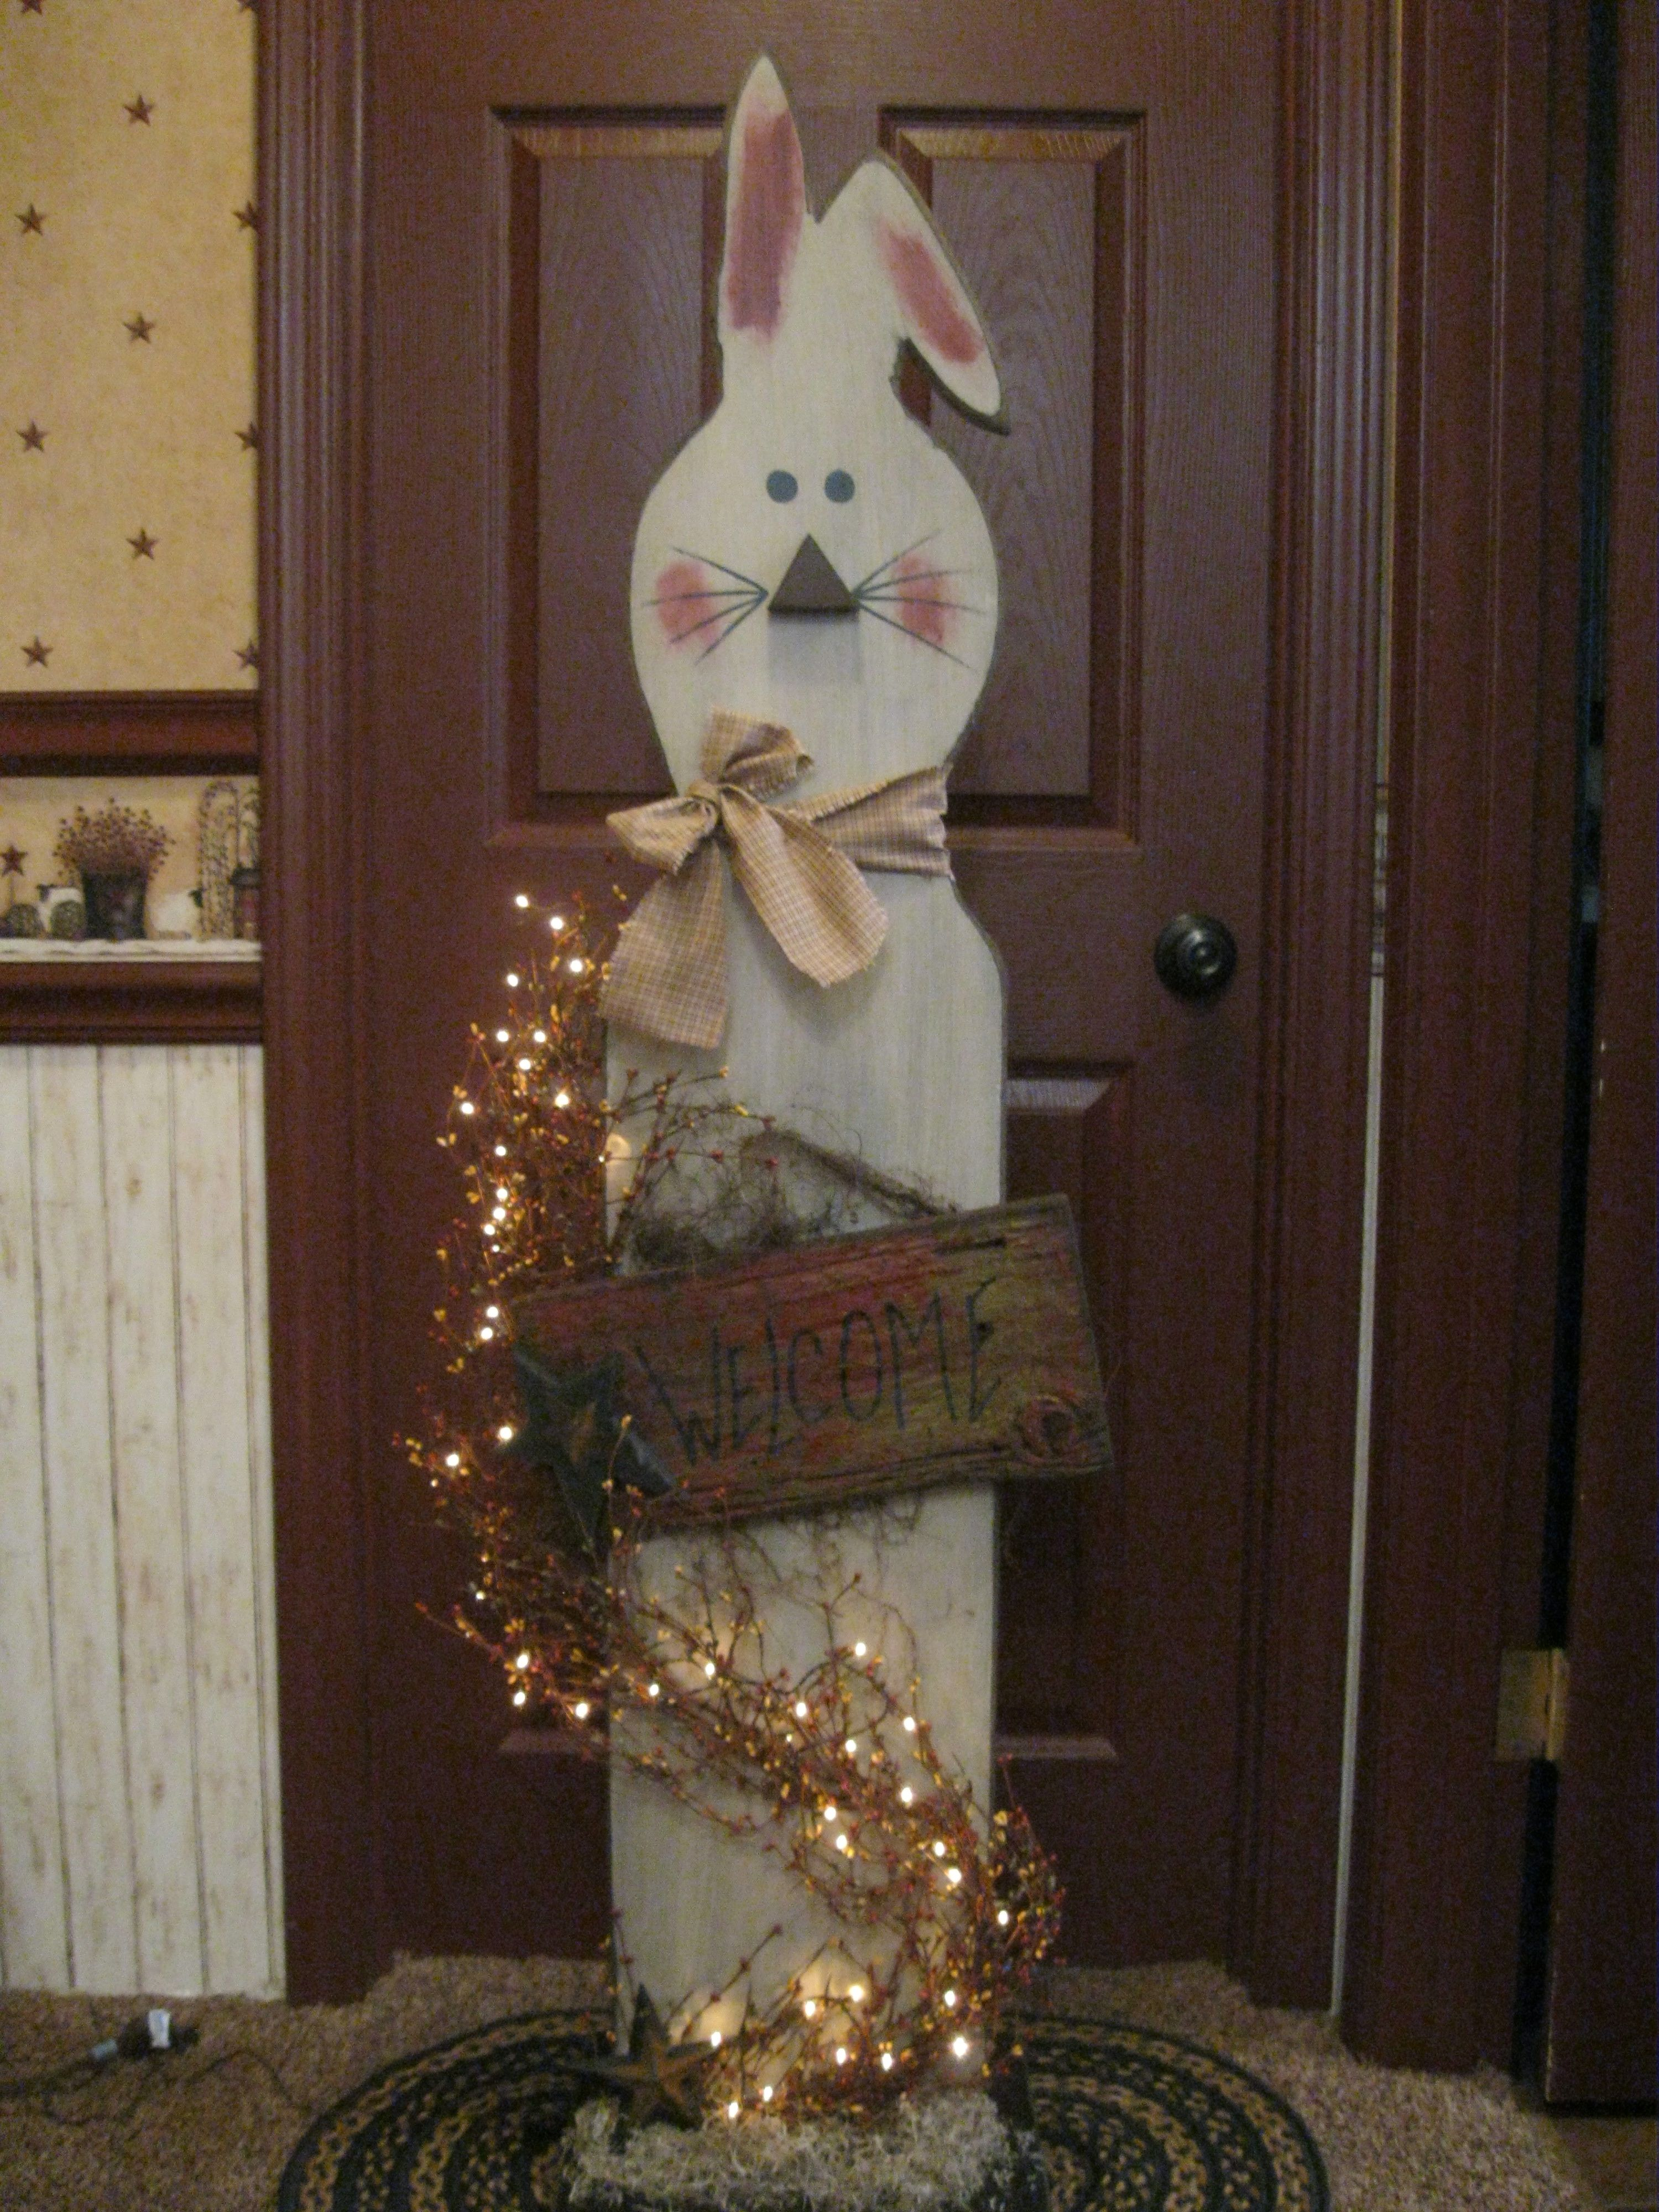 Big Bunny Easter Wooden Crafts Pinterest Big Bunny